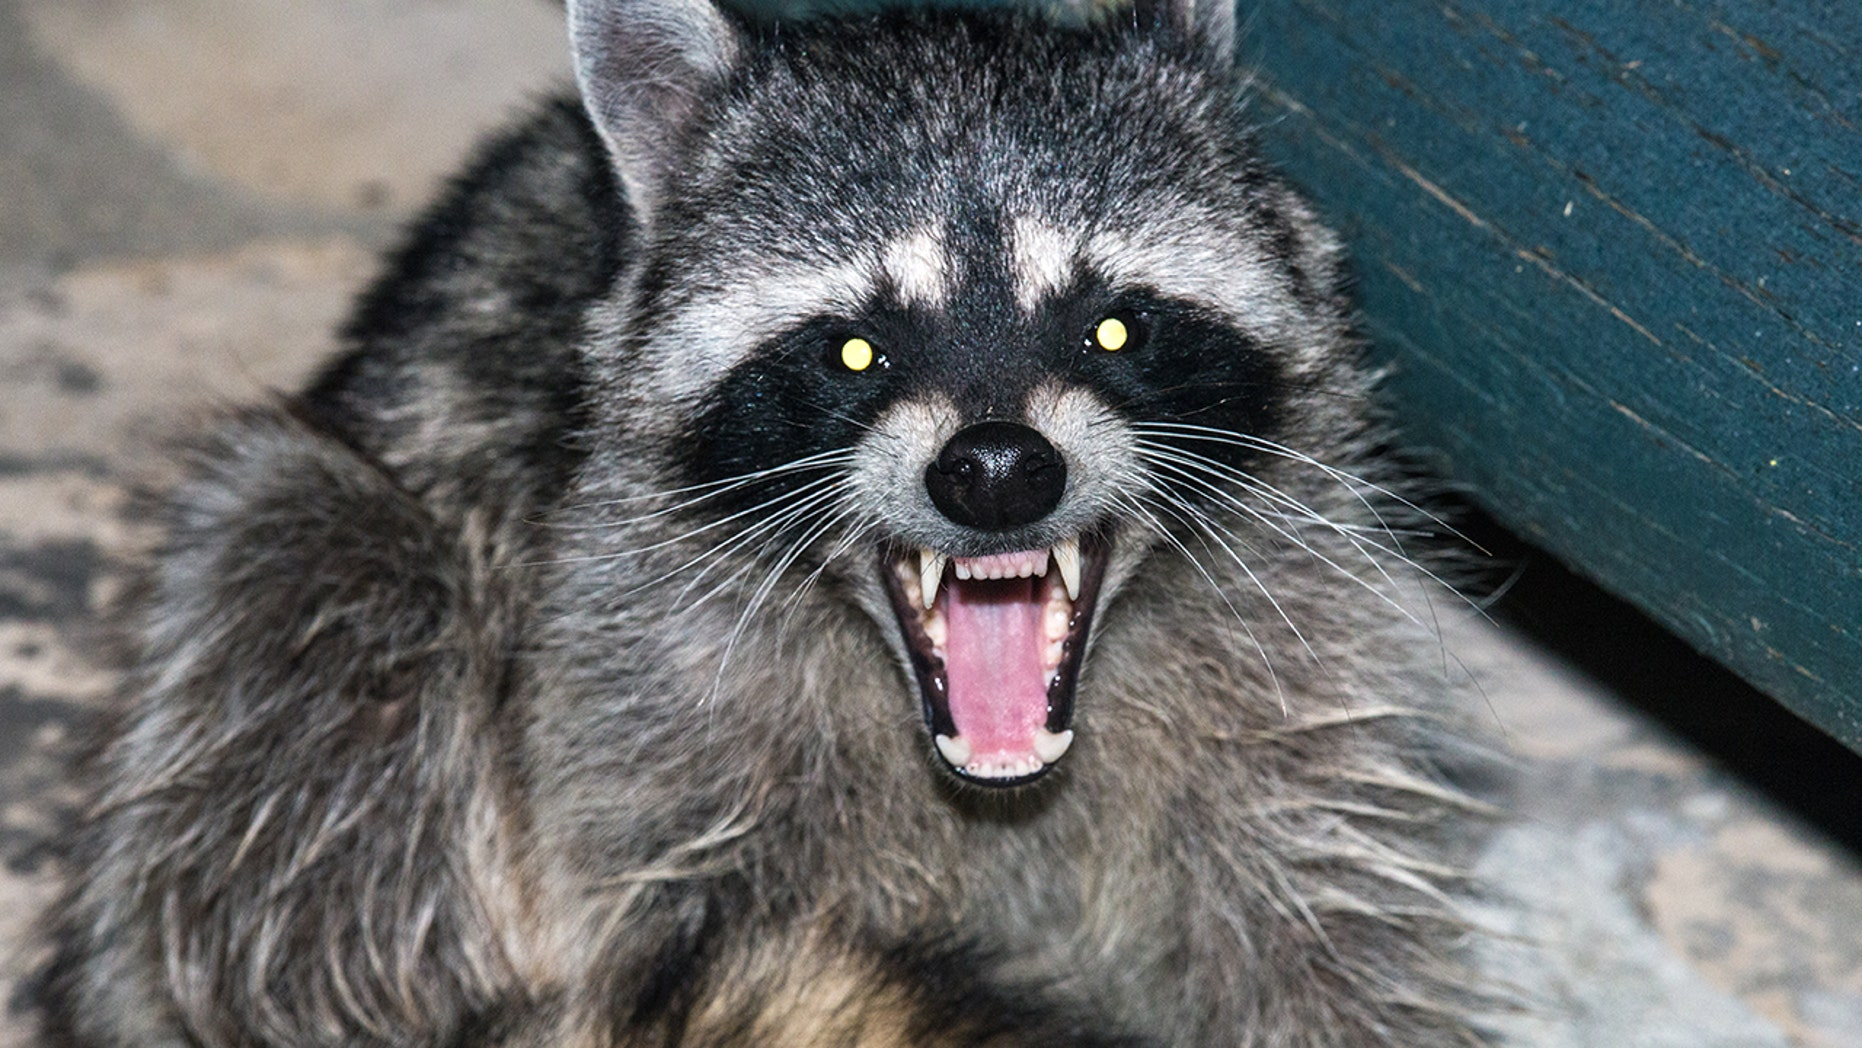 Over 100 raccoons have died thanks to a virus that makes them act like zombies.